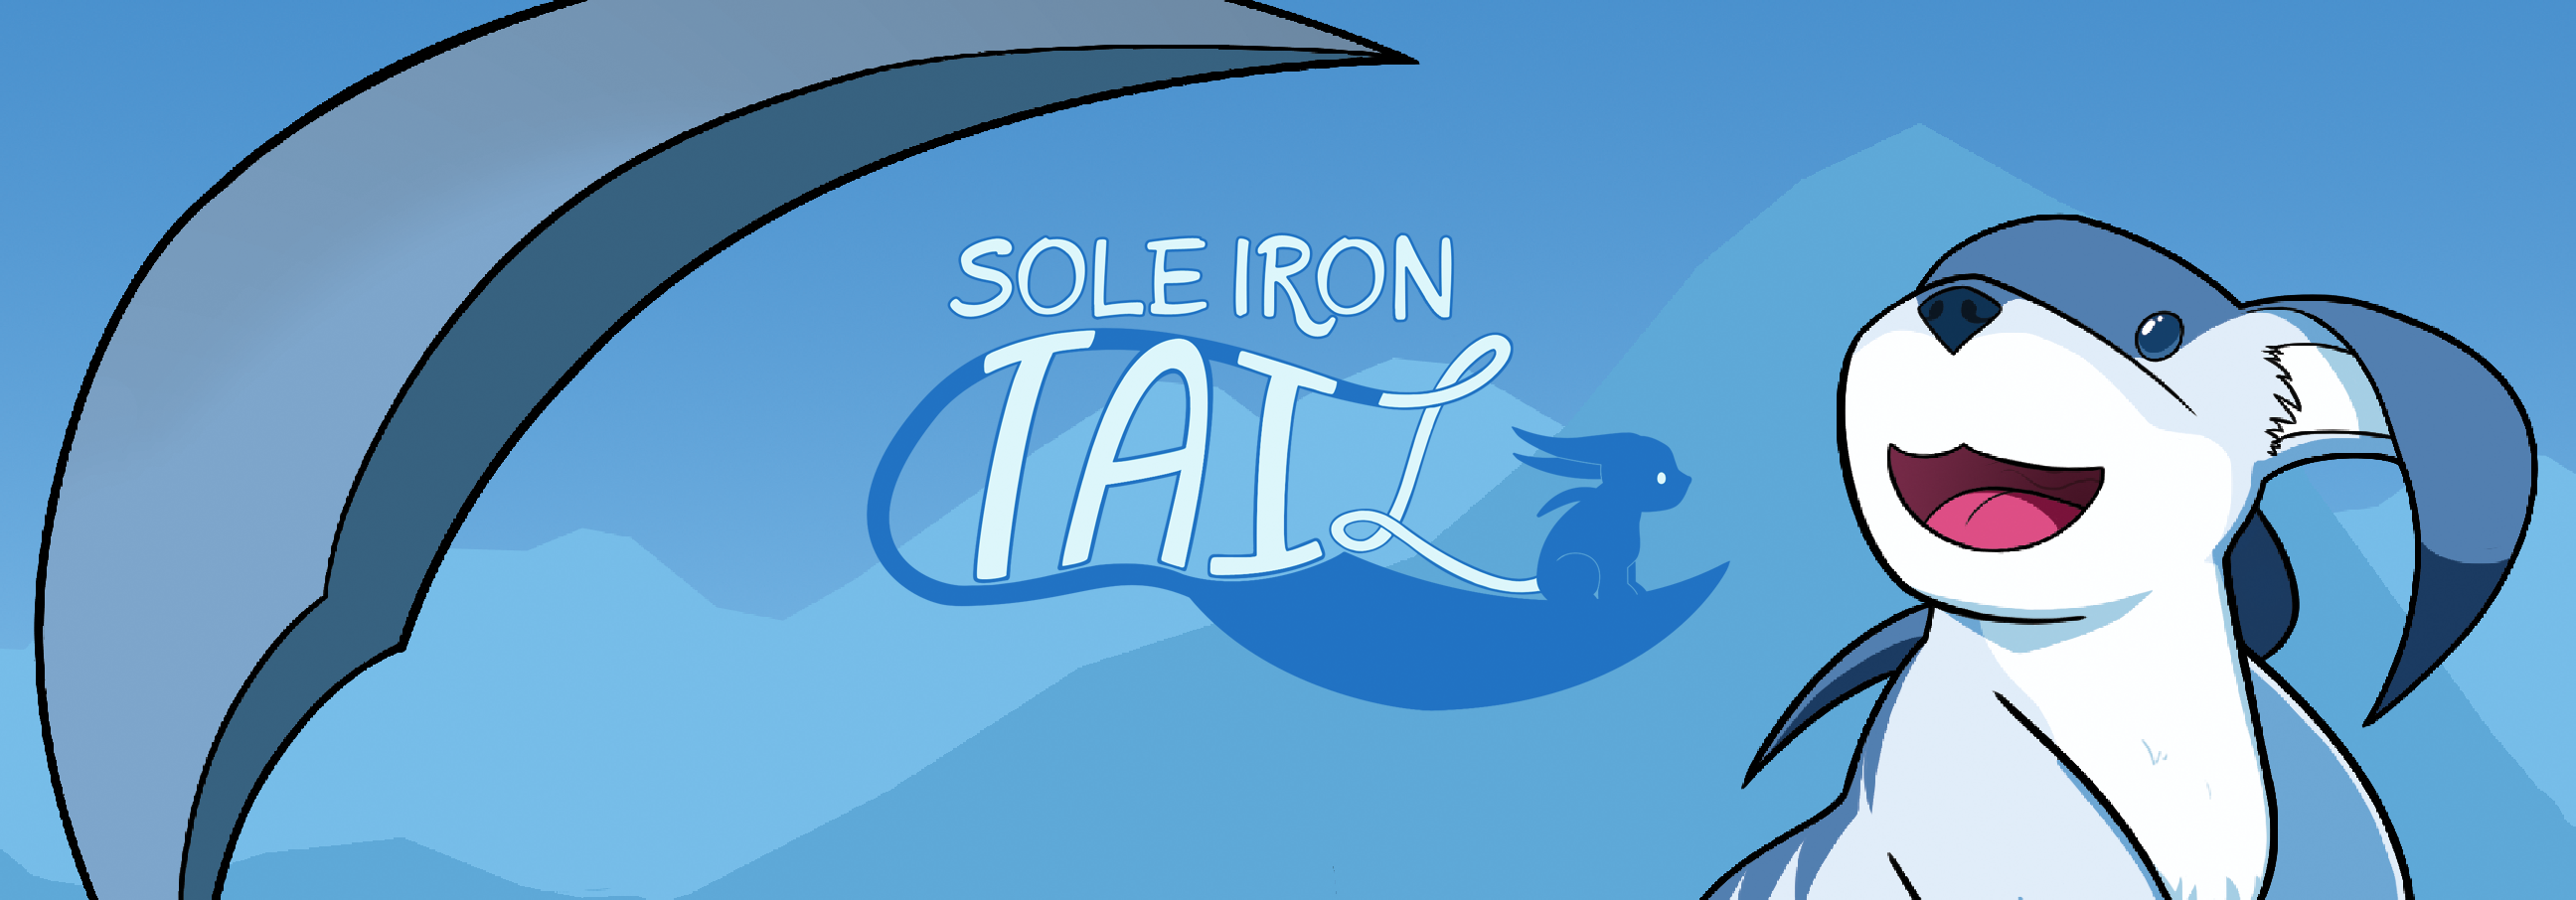 Sole Iron Tail Demo